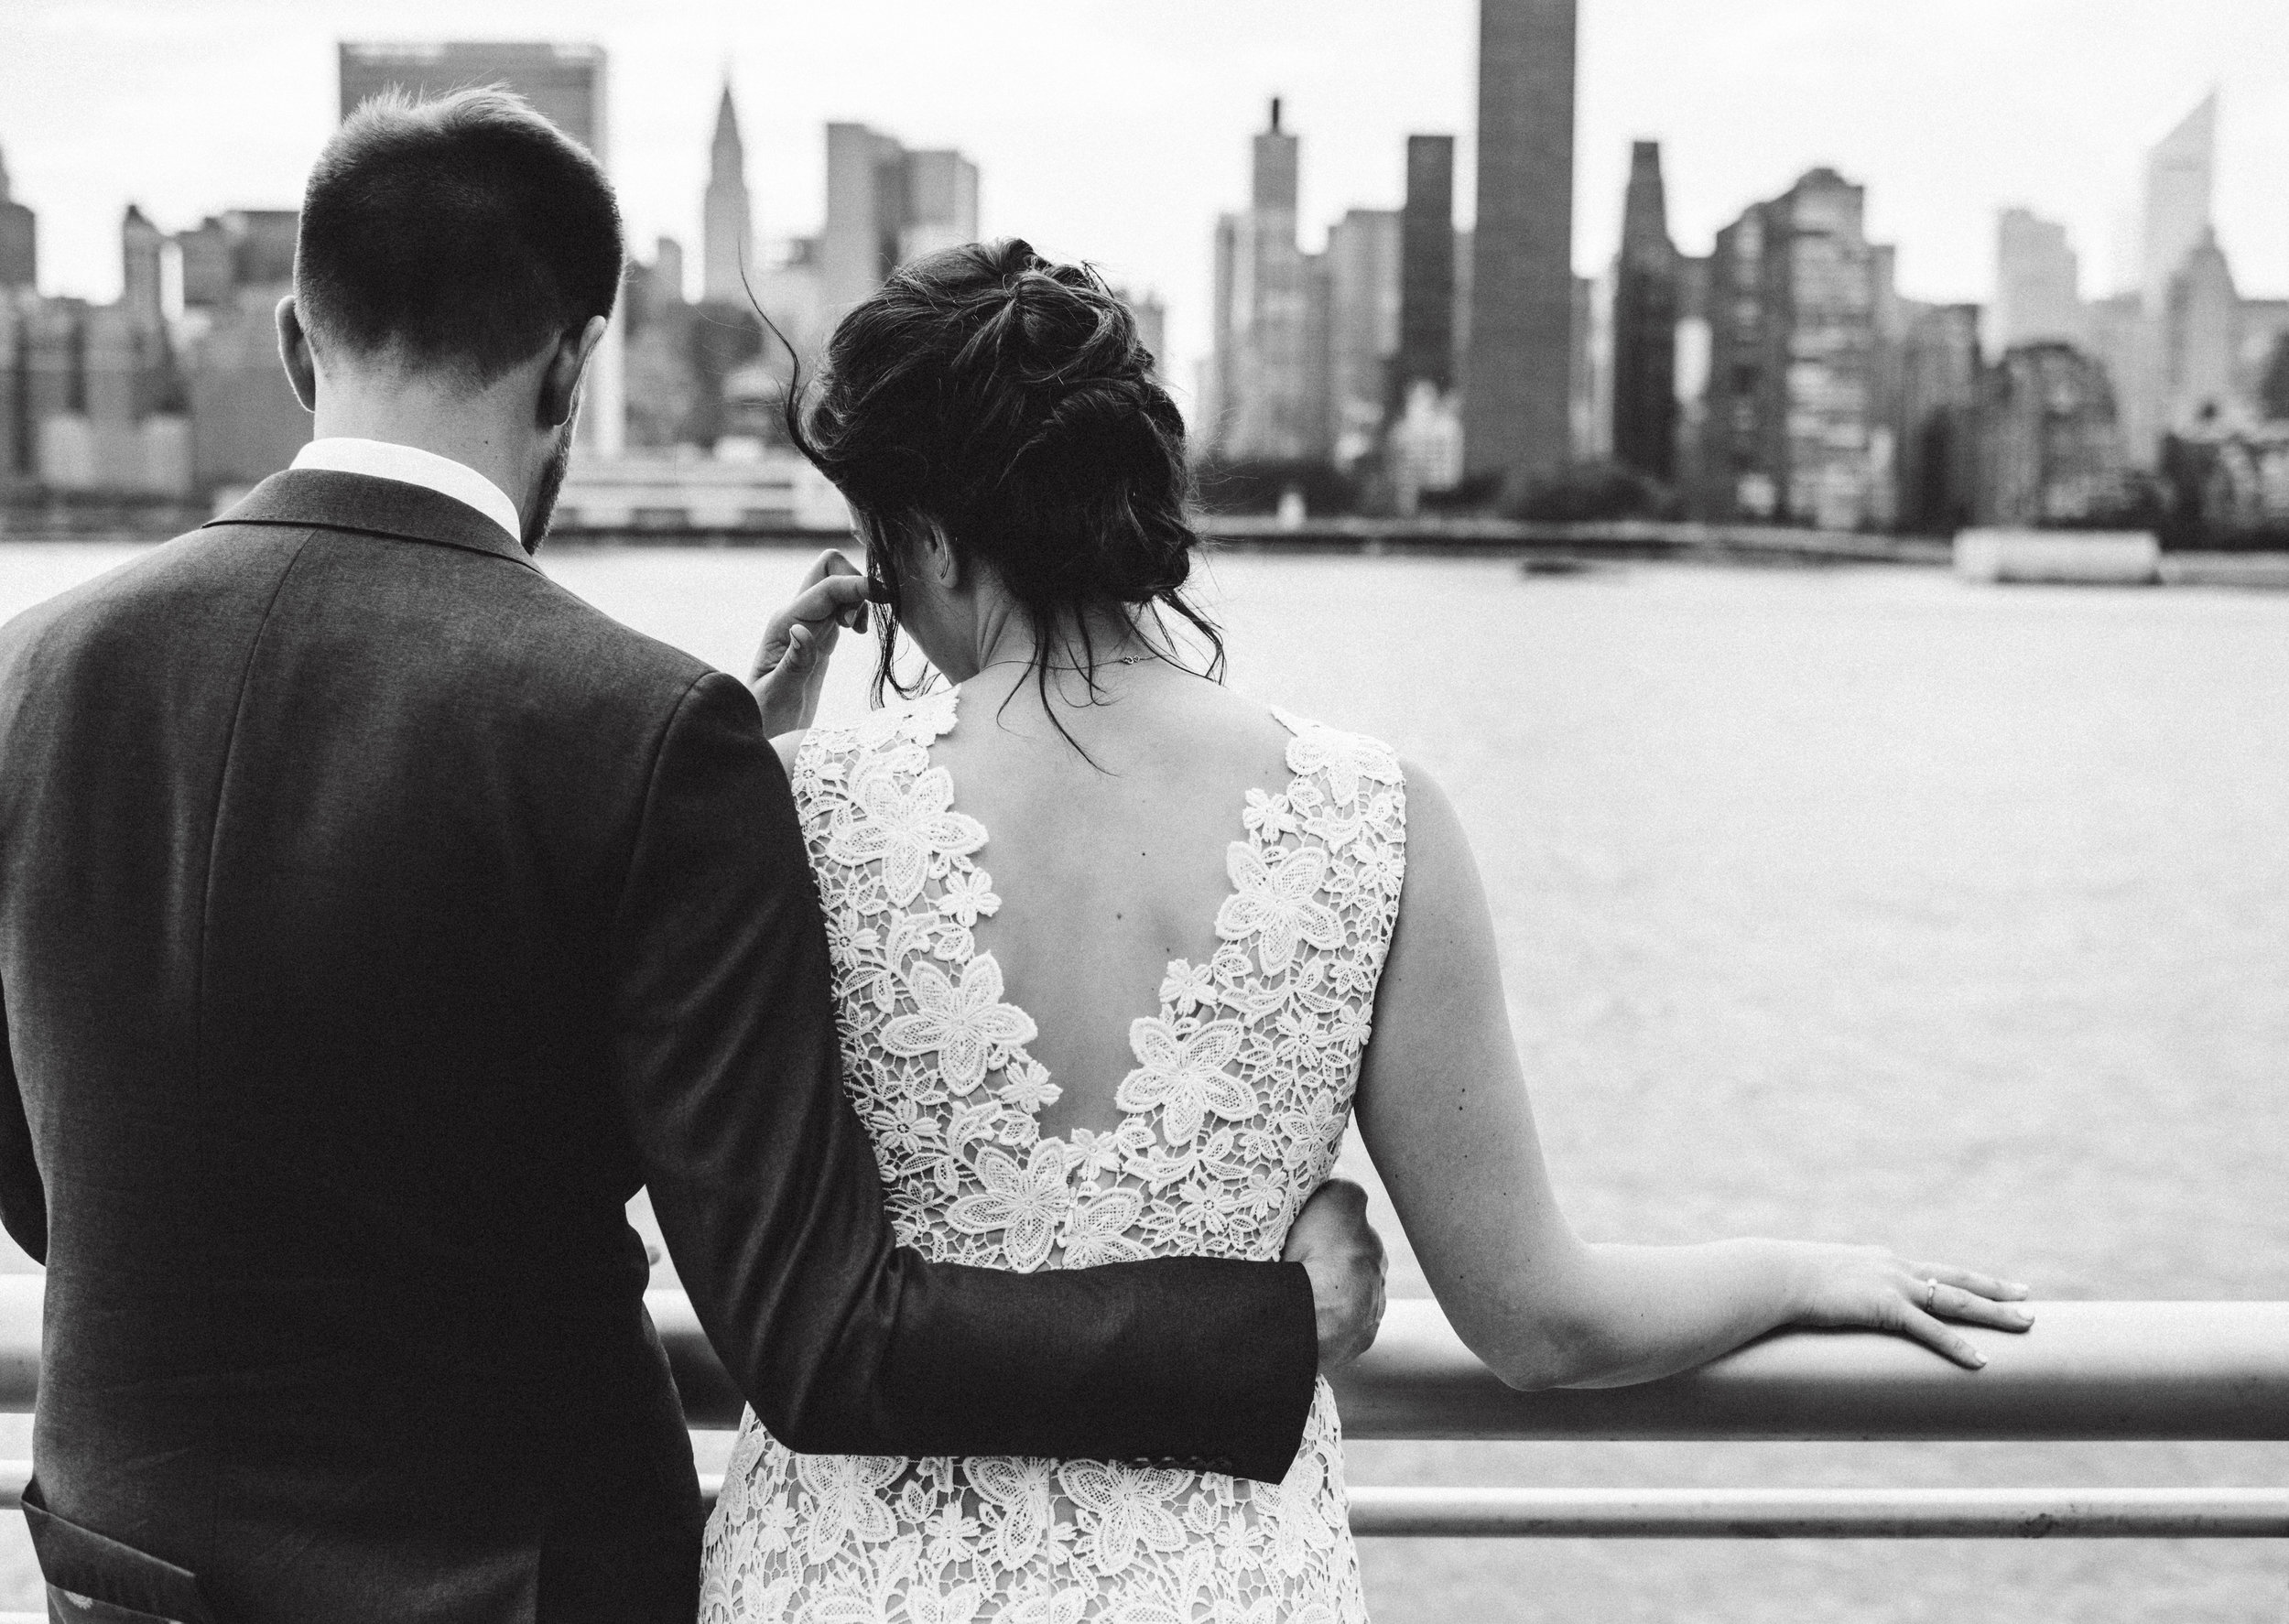 AMANDA & MATT - LE FANFARE NYC - INTIMATE WEDDING PHOTOGRAPHER by CHI-CHI ARI-188.jpg